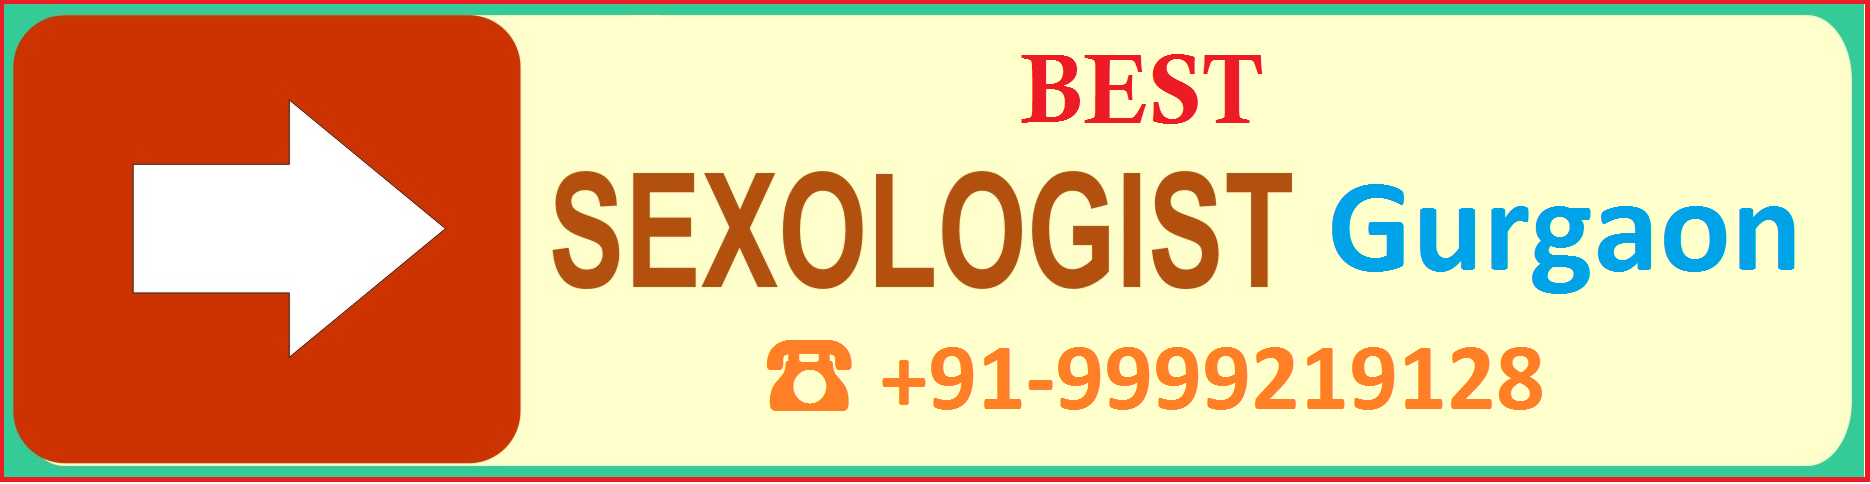 Diabetes and erectile dysfunction treatment specialist in Delhi